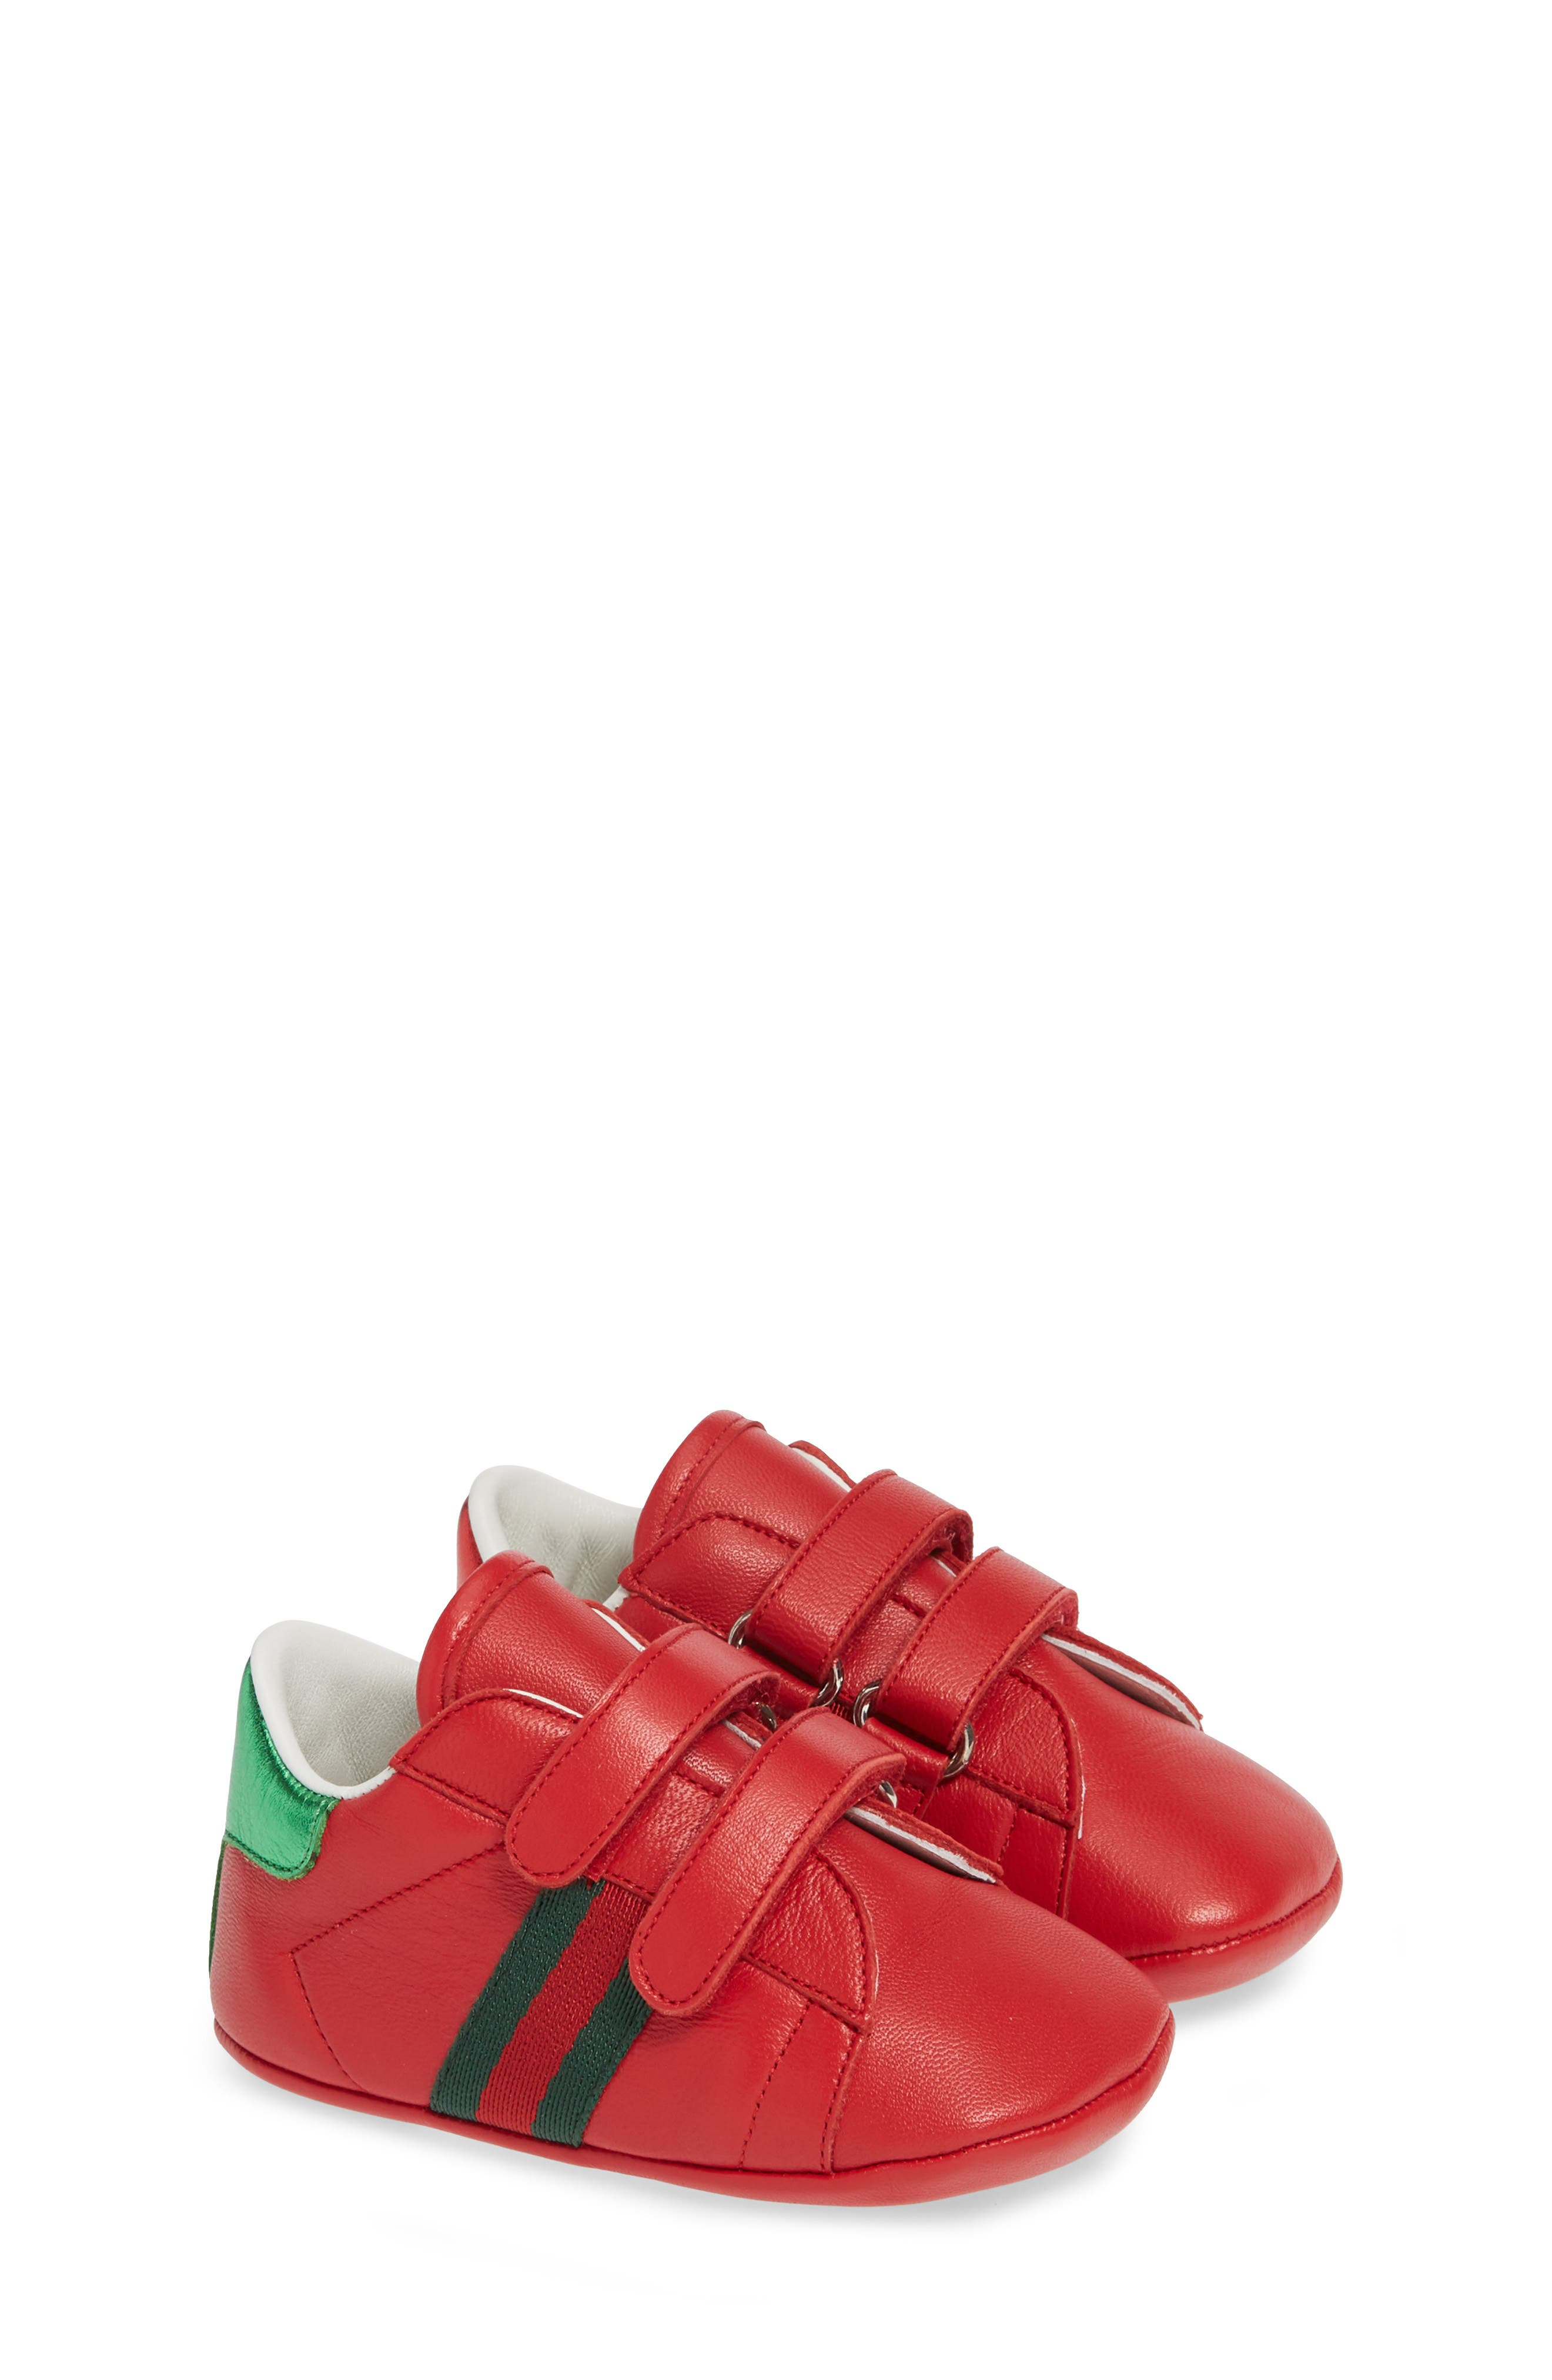 GUCCI,                             Ace Crib Shoe,                             Alternate thumbnail 2, color,                             RED